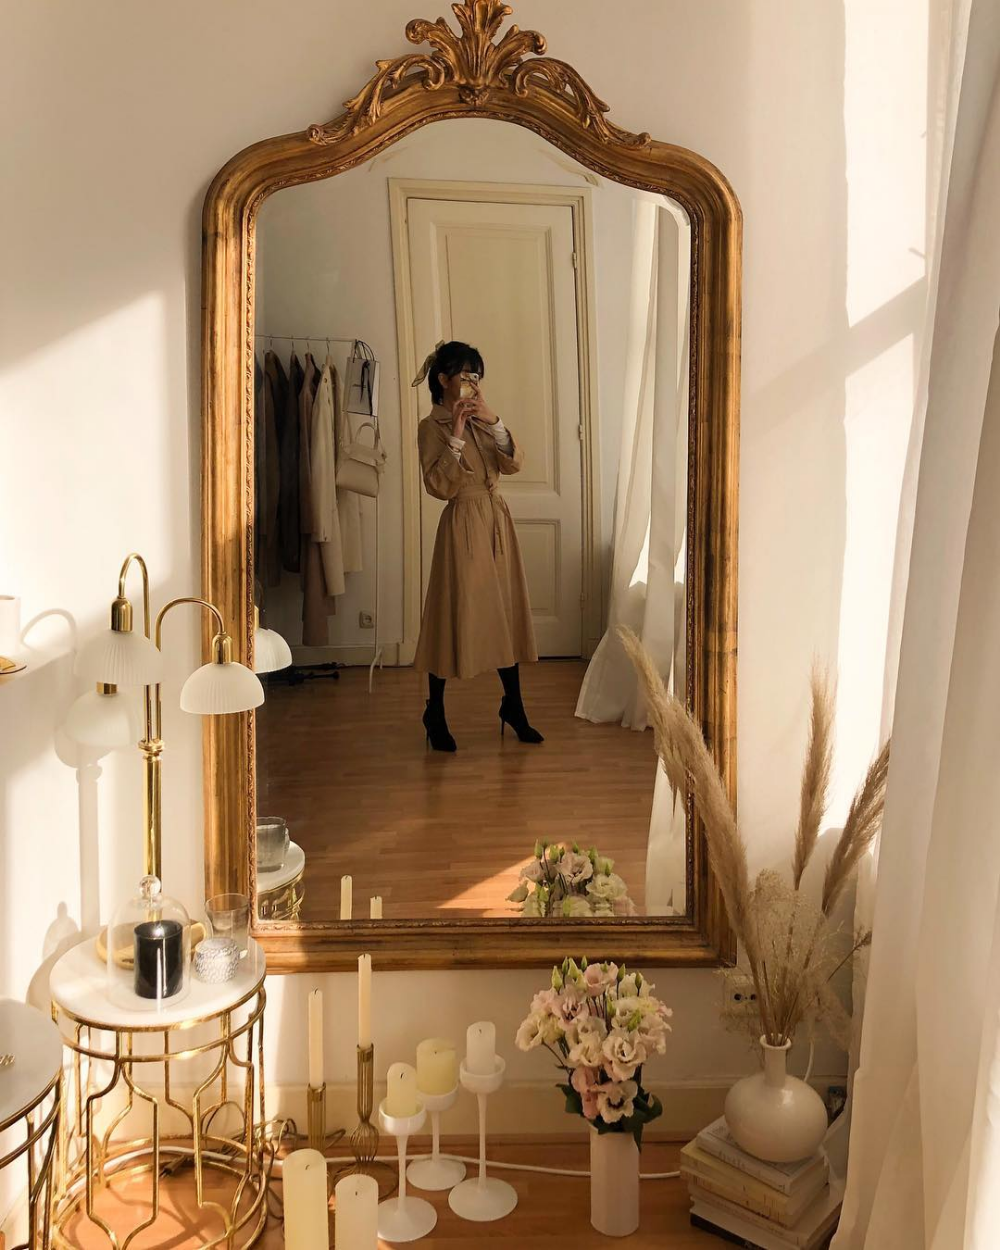 5 French styling tip every home needs - THE STREET VIBE